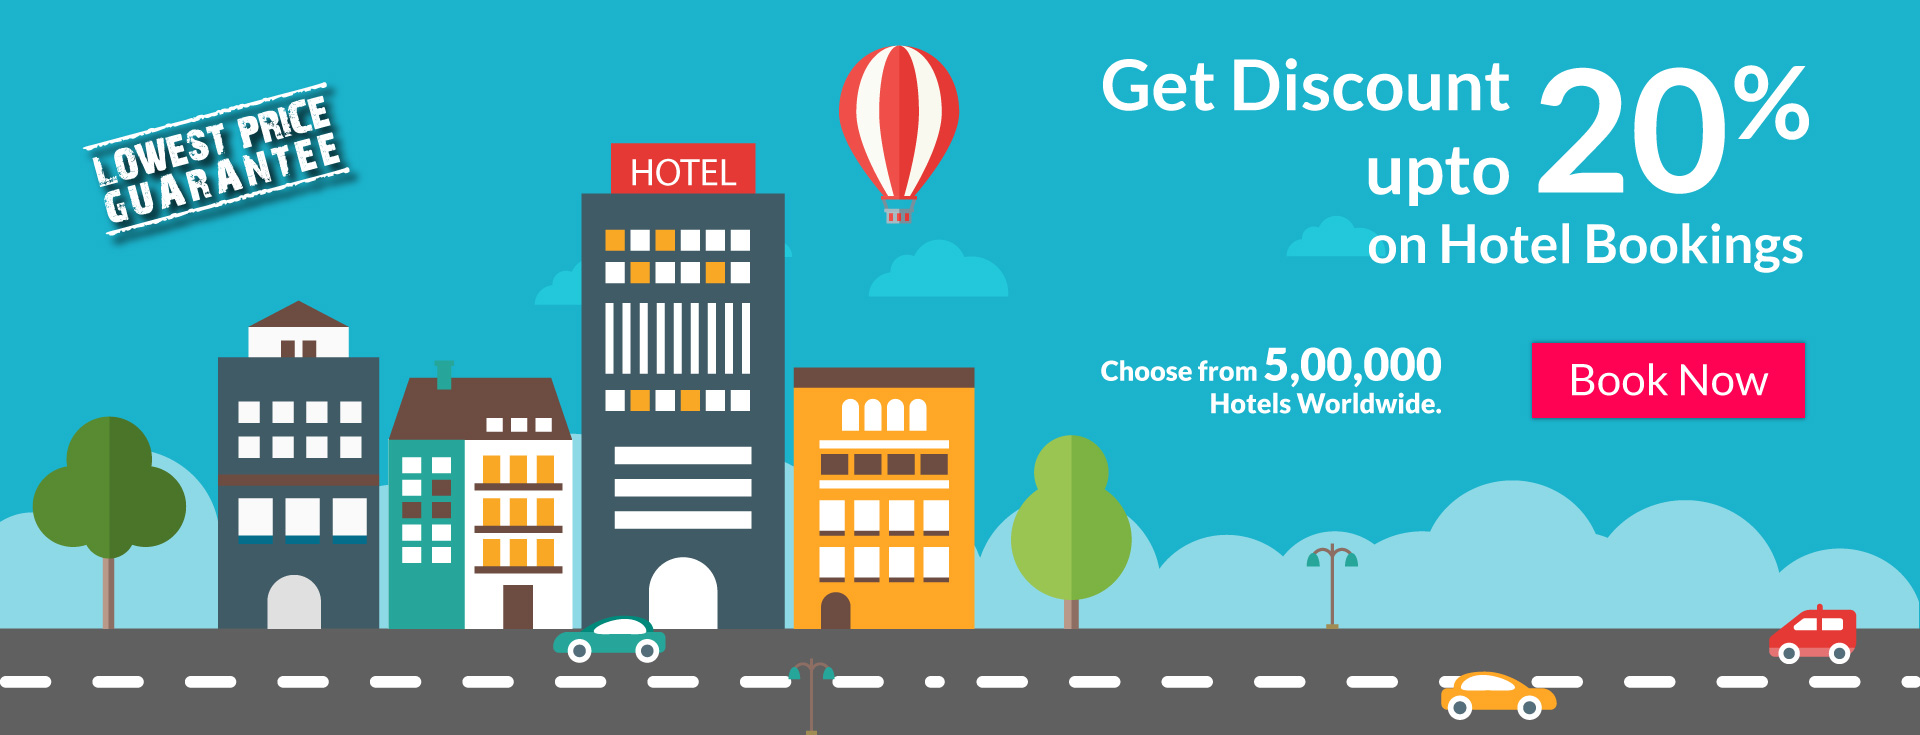 Travel discount hotel coupon magazine